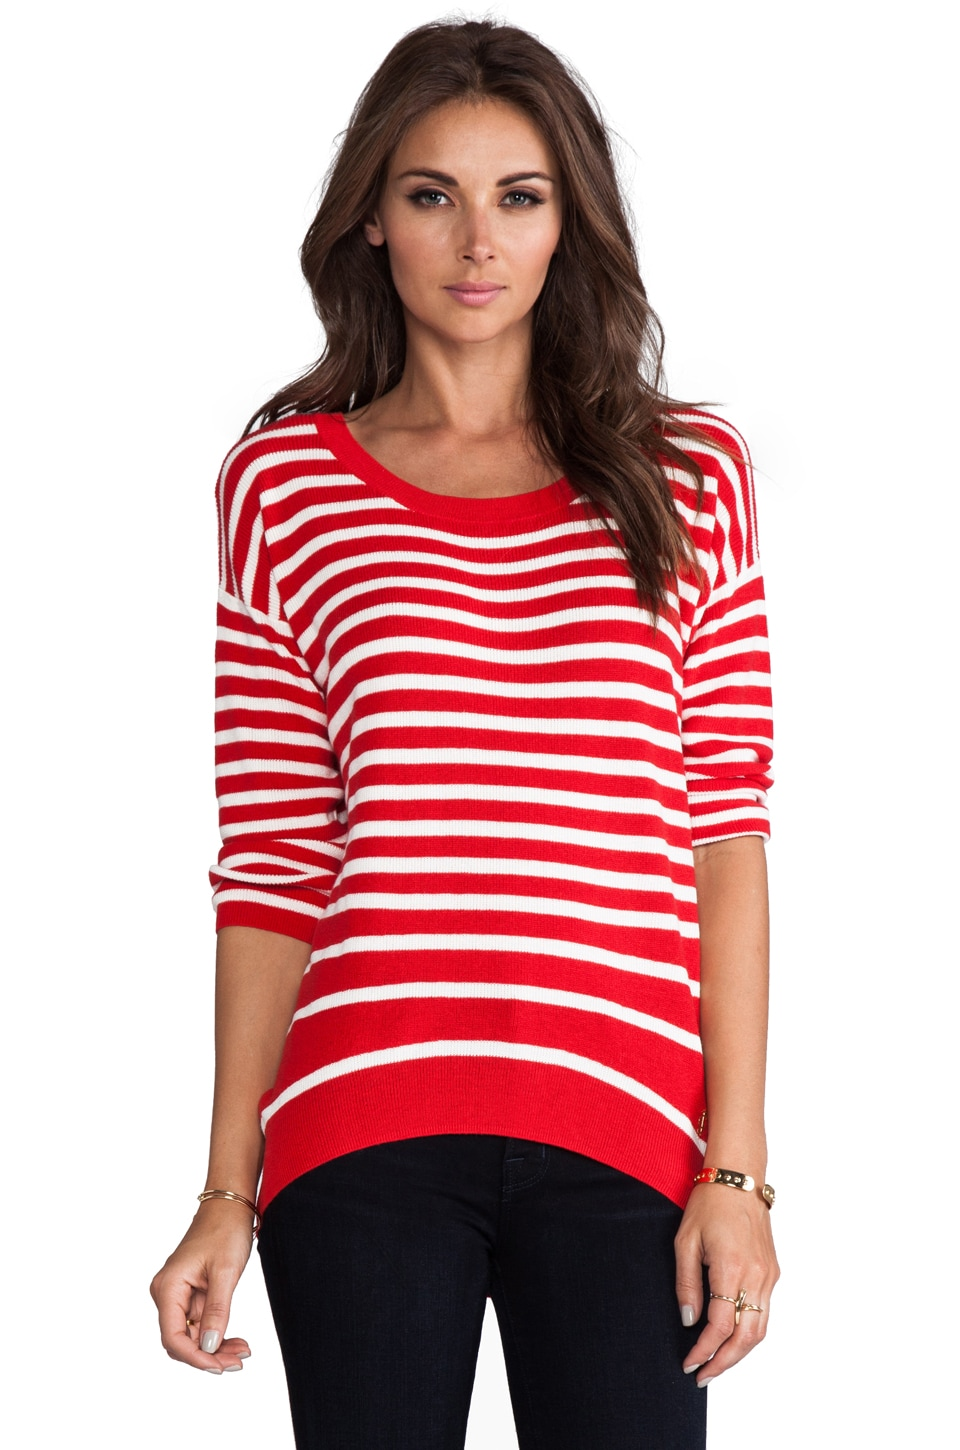 Juicy Couture Peyton Stripe Sweater in Fire/Angel